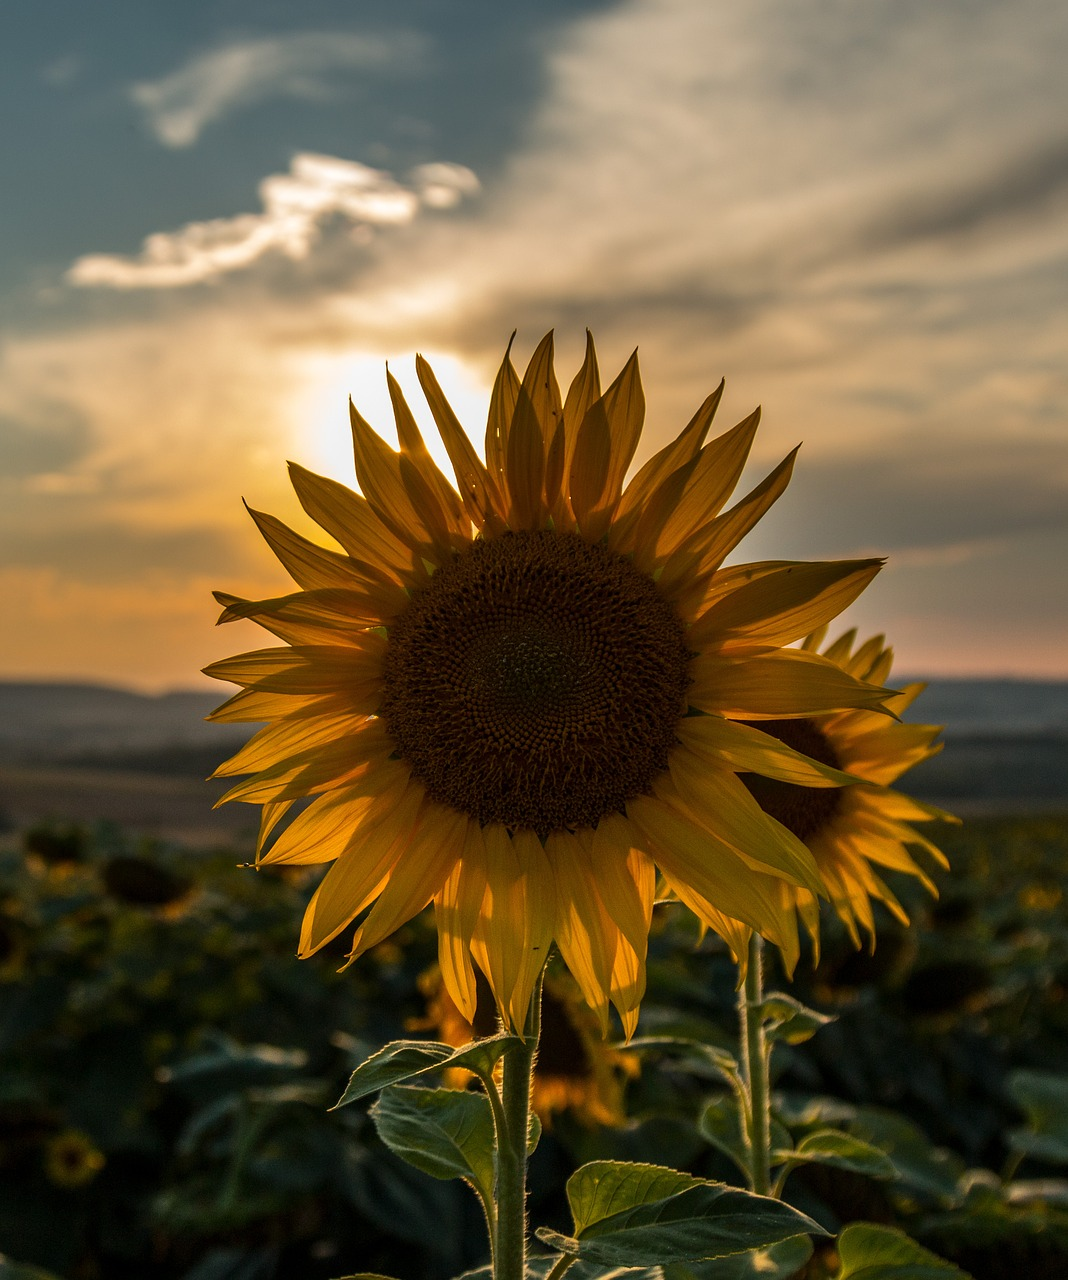 sunflower-3758190_1280